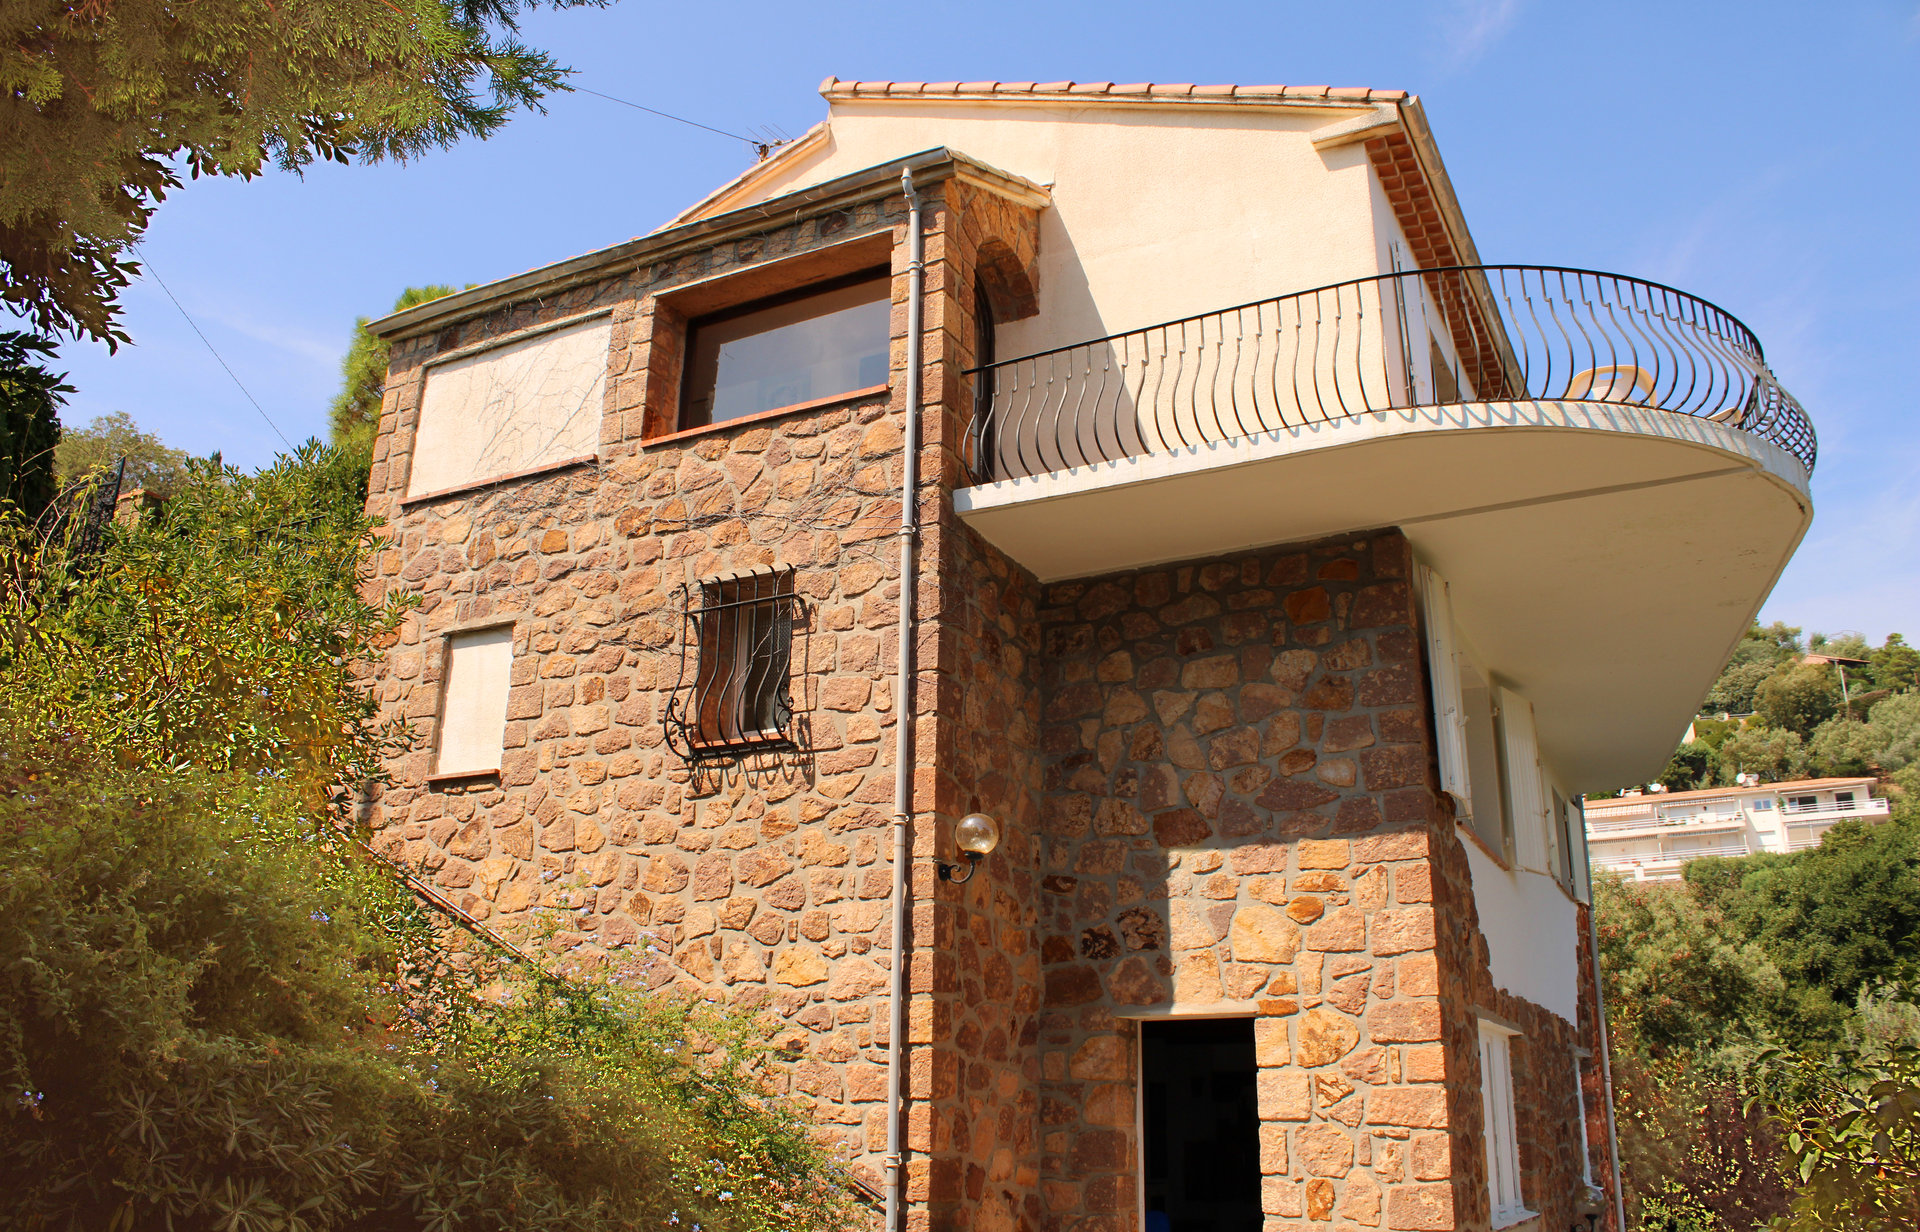 Villa in a quiet location, with a magnificent view of the sea.